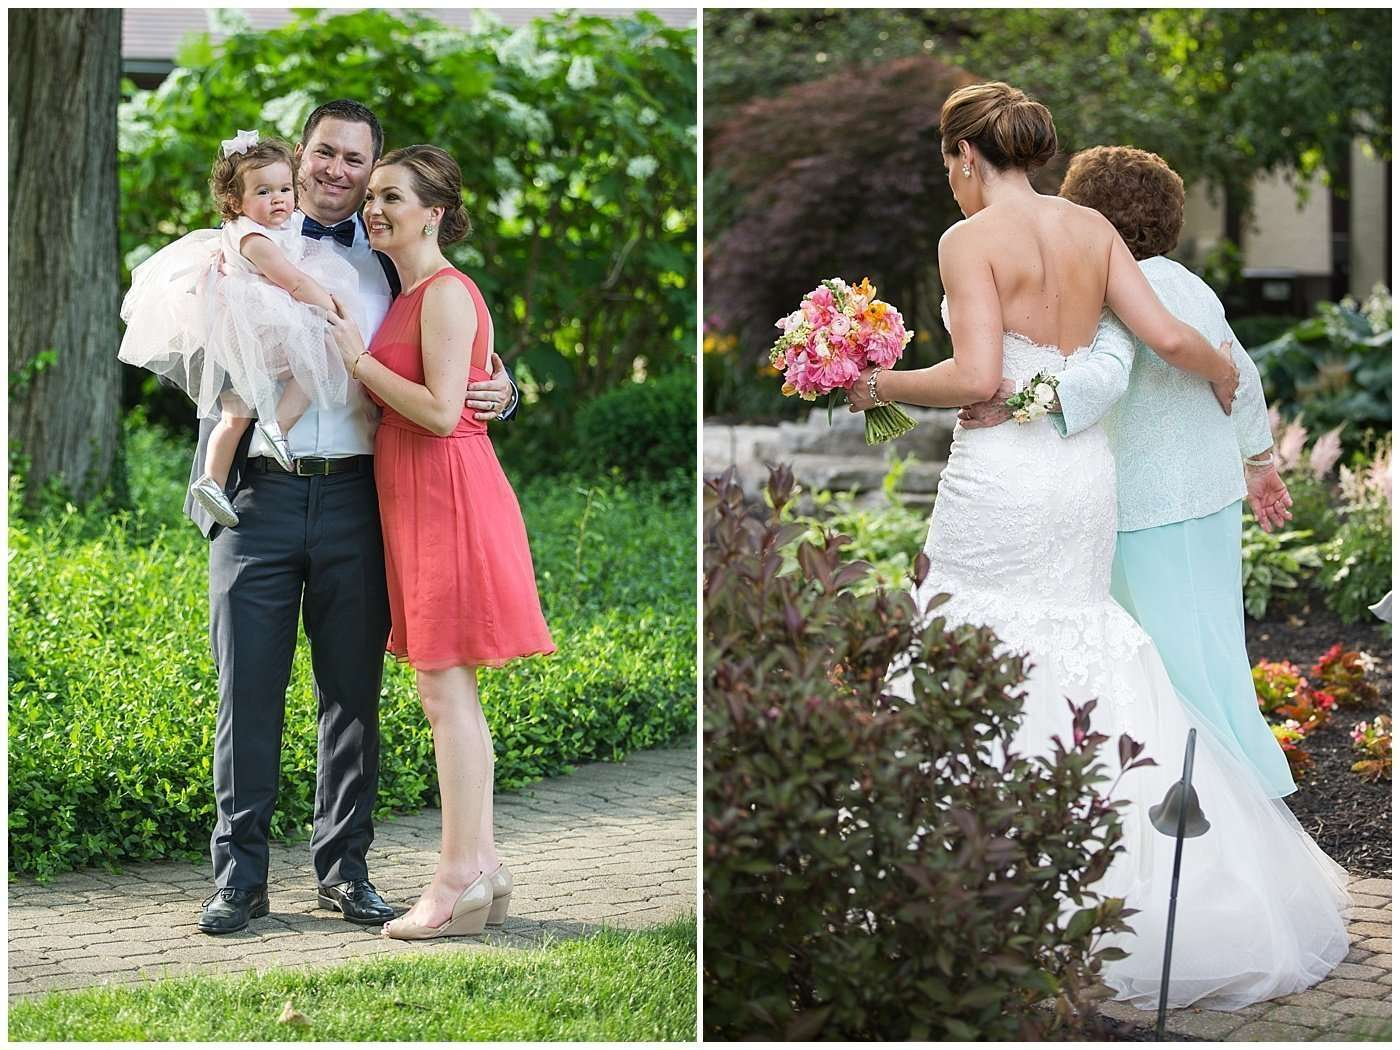 Kim & Lee | A Summer Wedding at Brookside Country Club 156